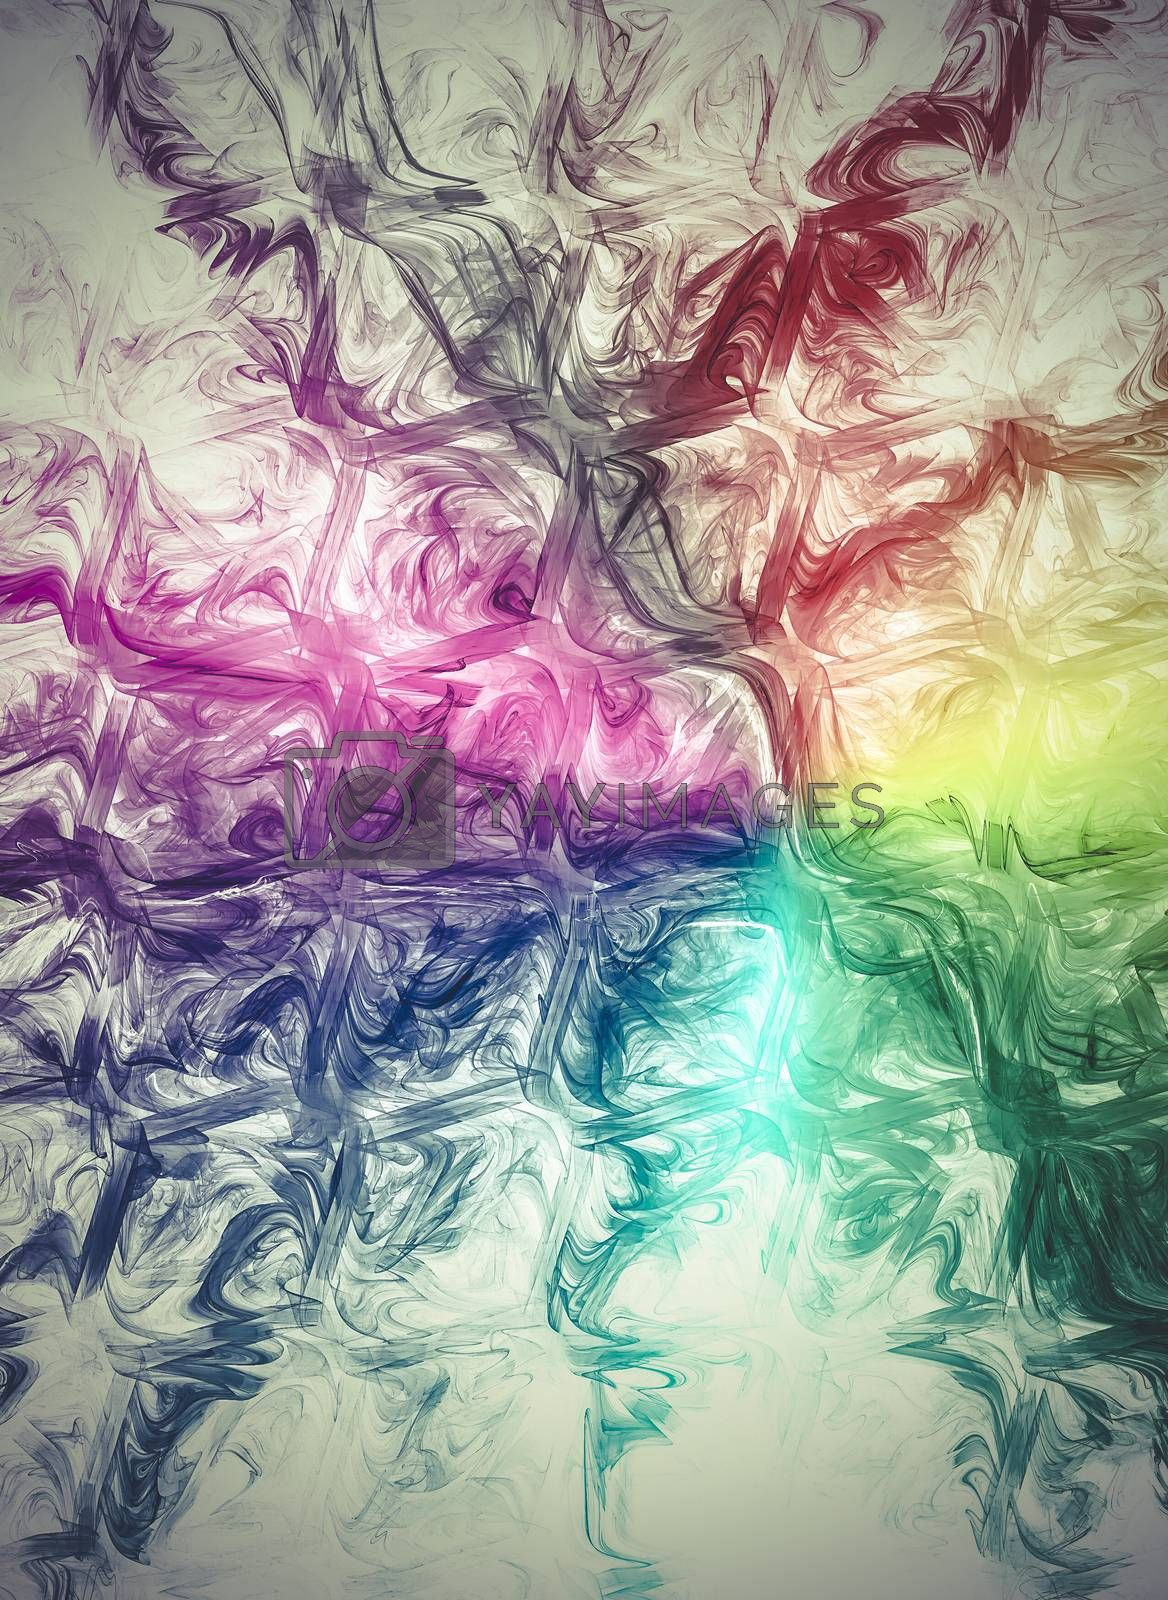 Energy, Creative design background, fractal styles with color de by FernandoCortes